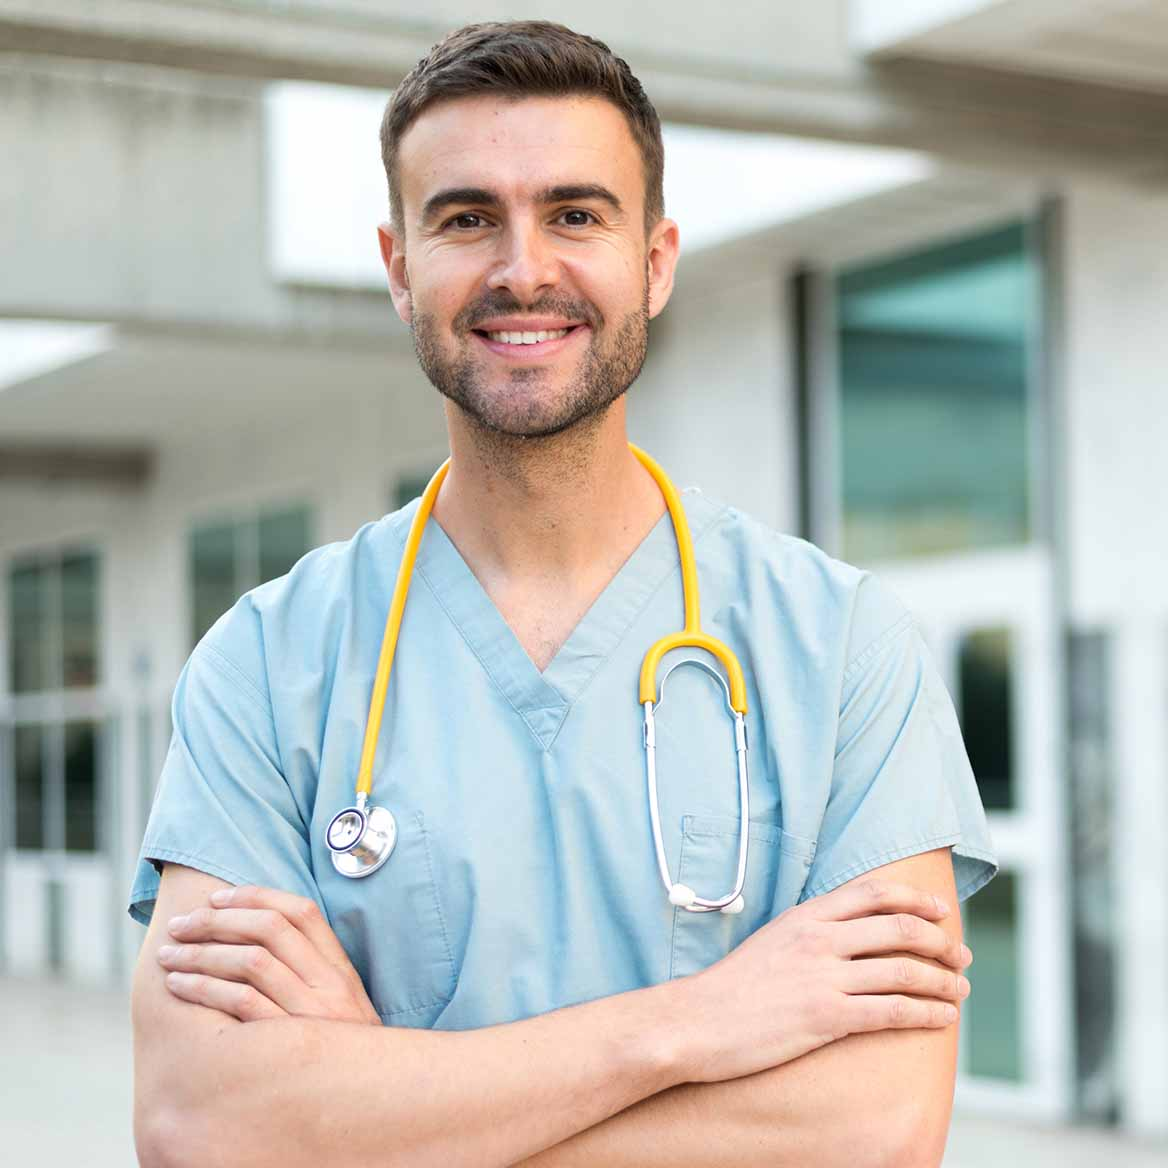 Image of male doctor with stethoscope around neck, in scrubs and smiling